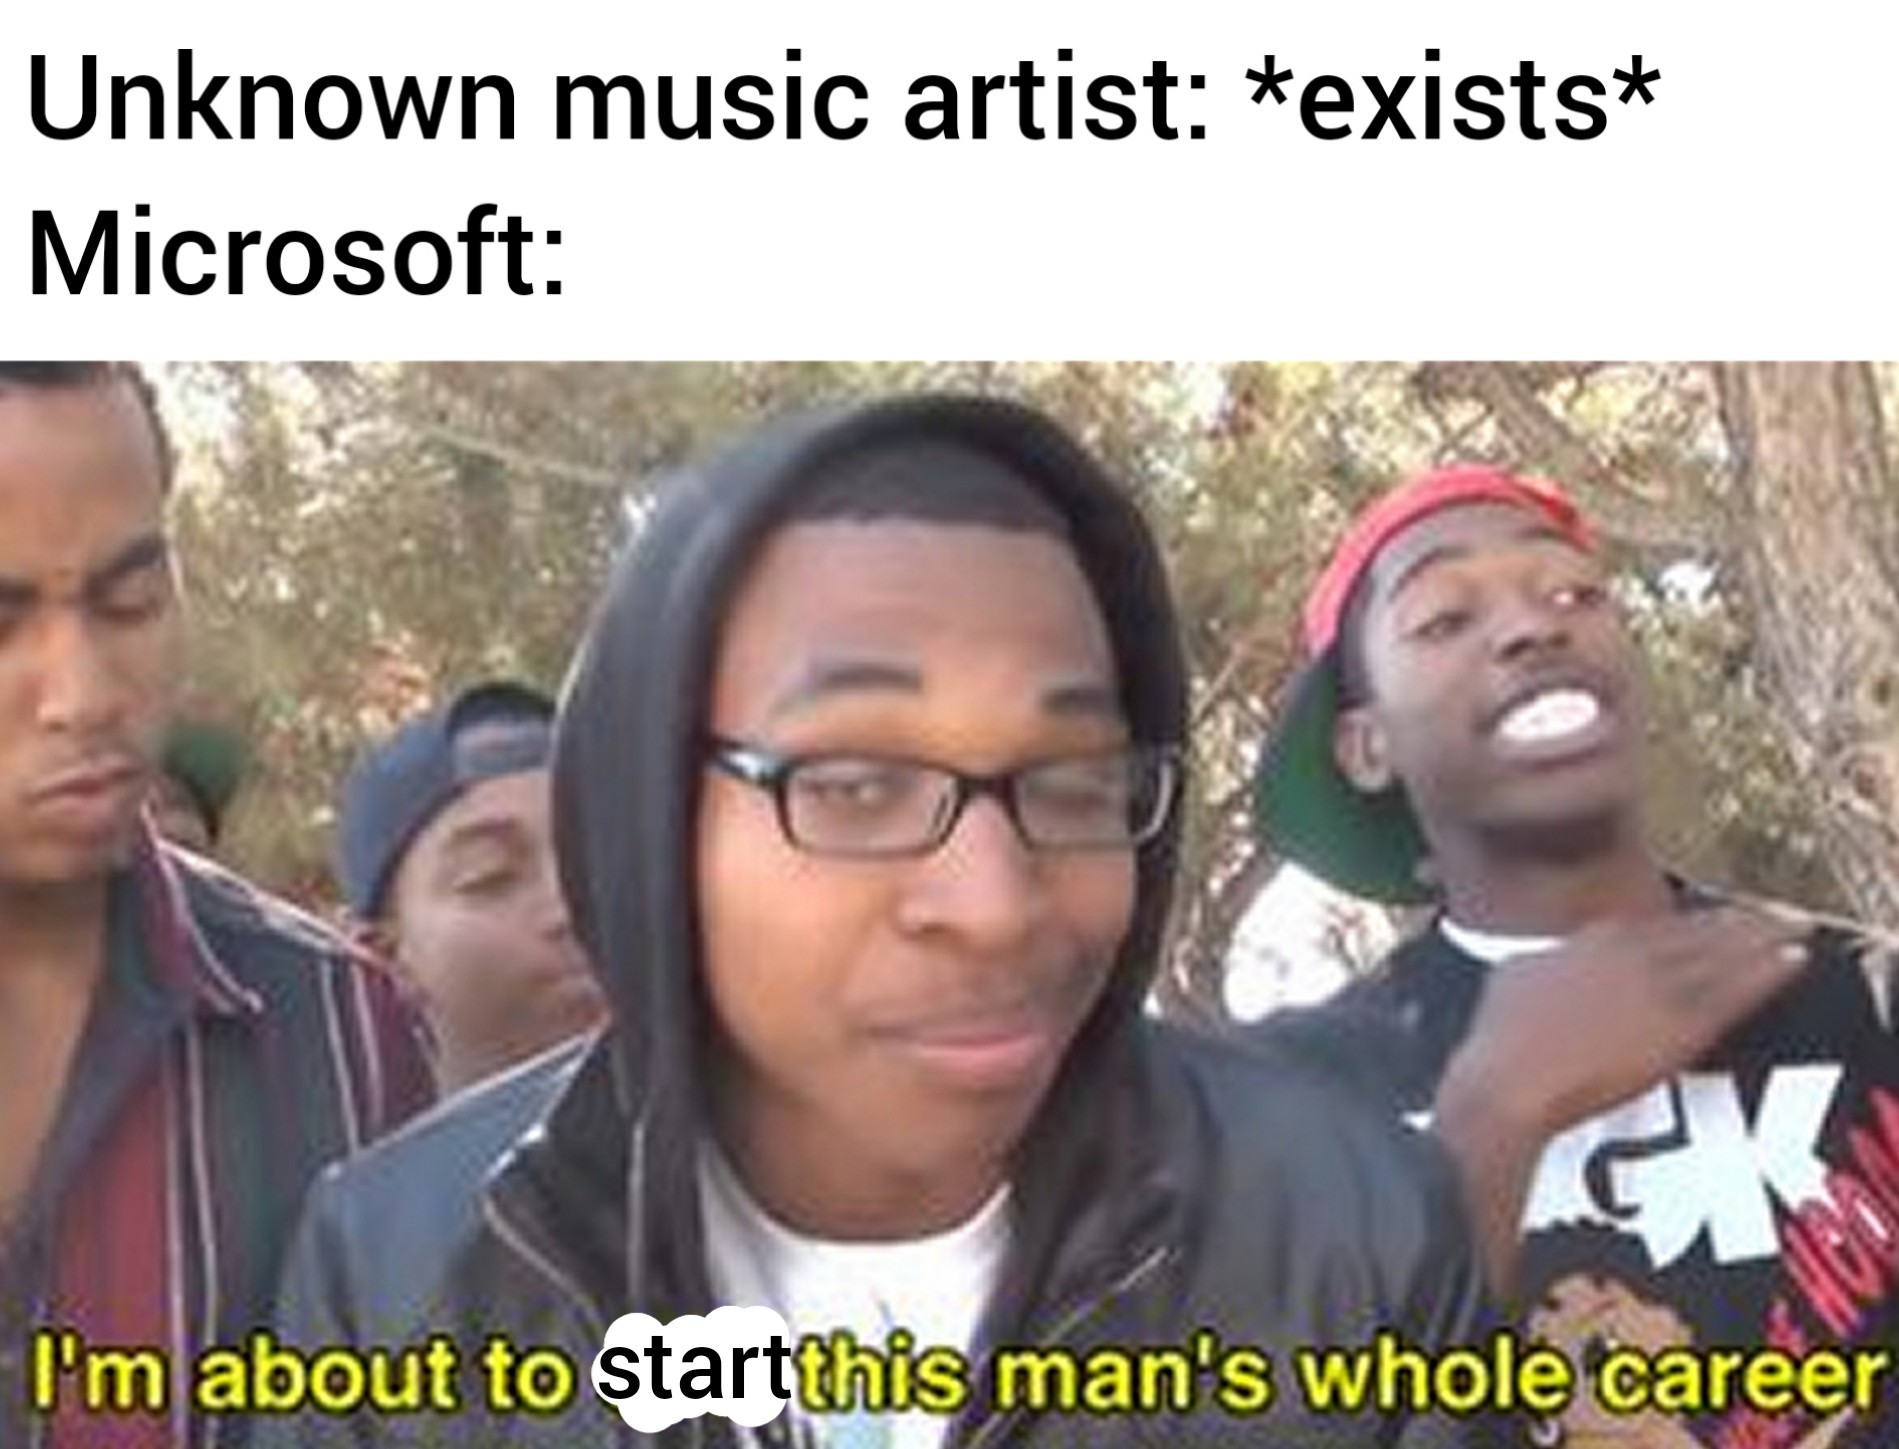 If you don't get it watch the Windows Terminal video - meme